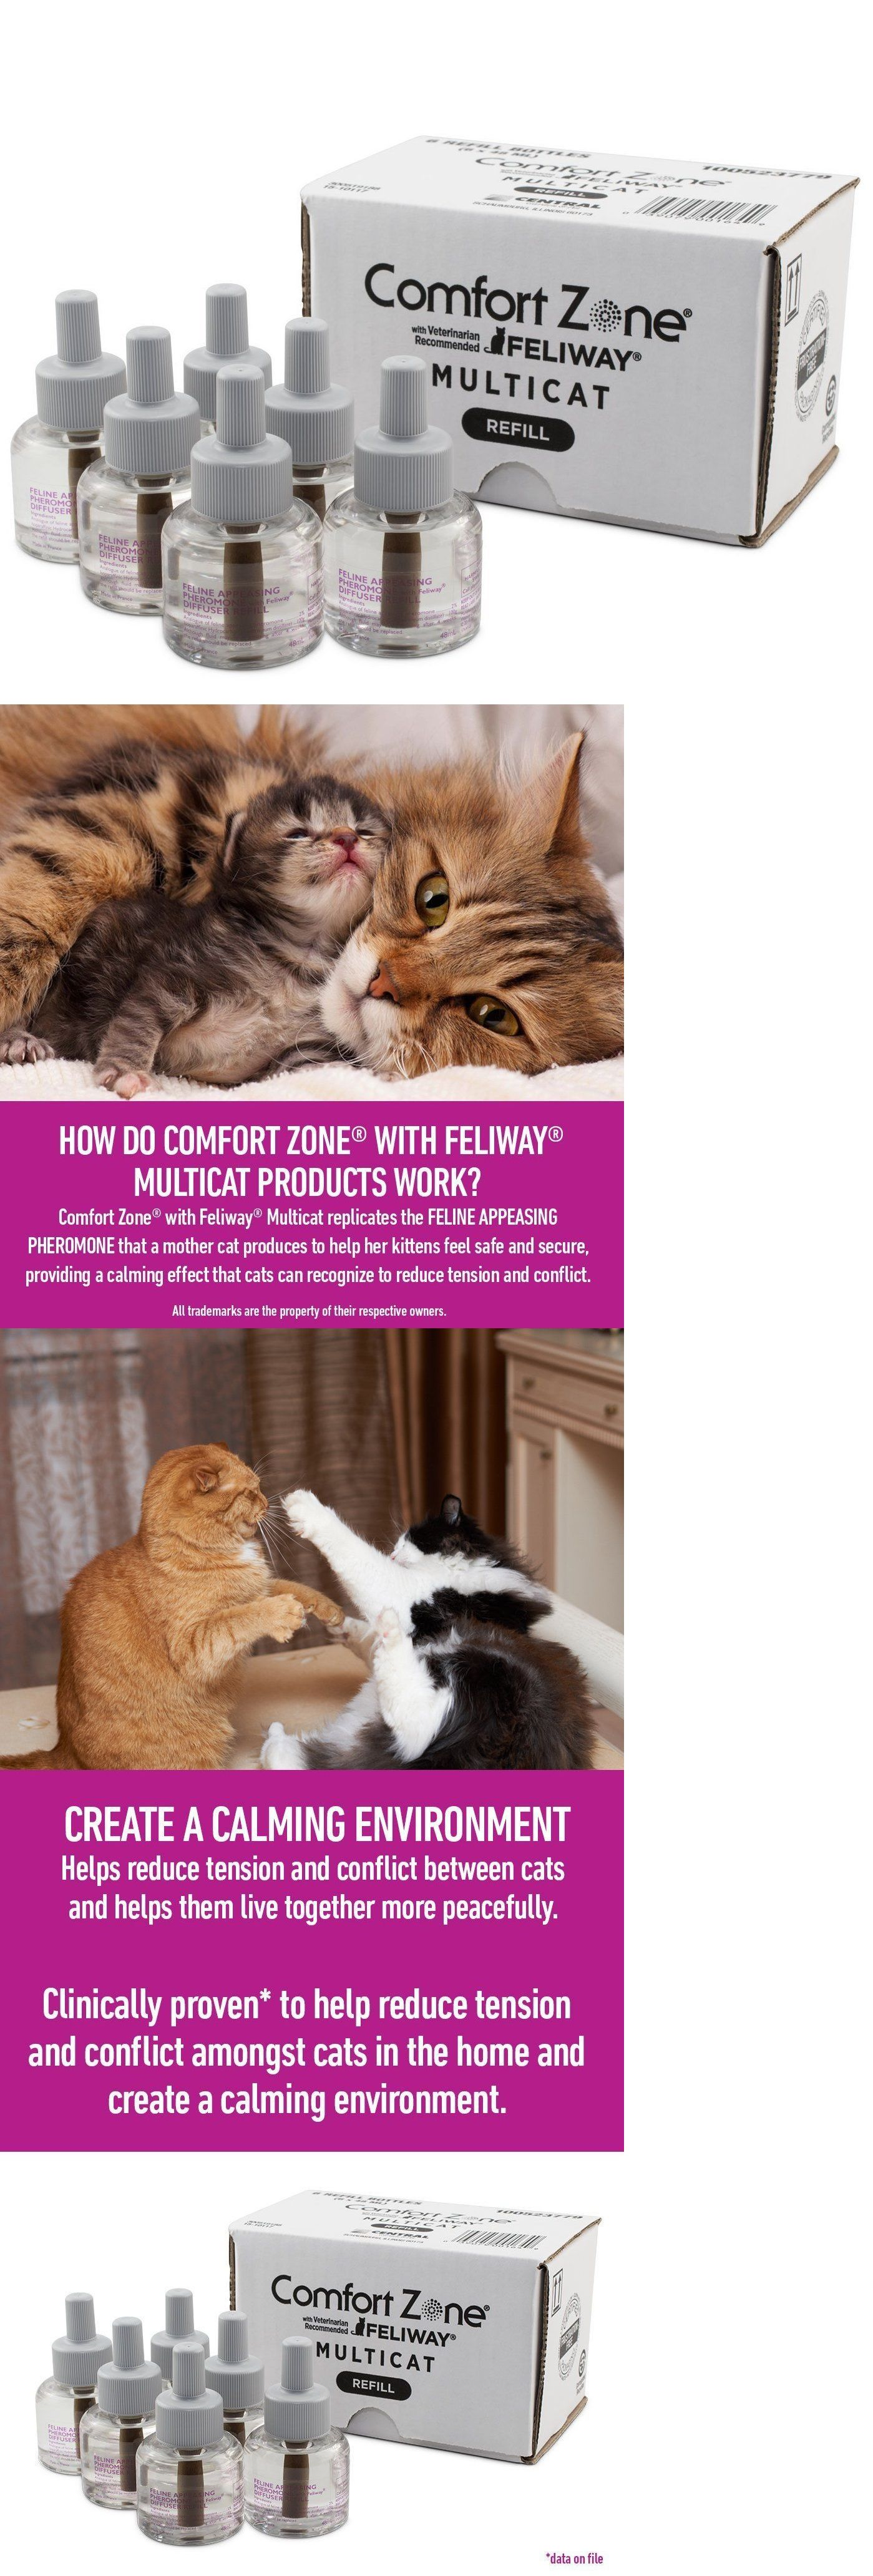 diffuser feliway plug and ins drug comfort pheromone multicat pin refill cat comforter zone sprays calming